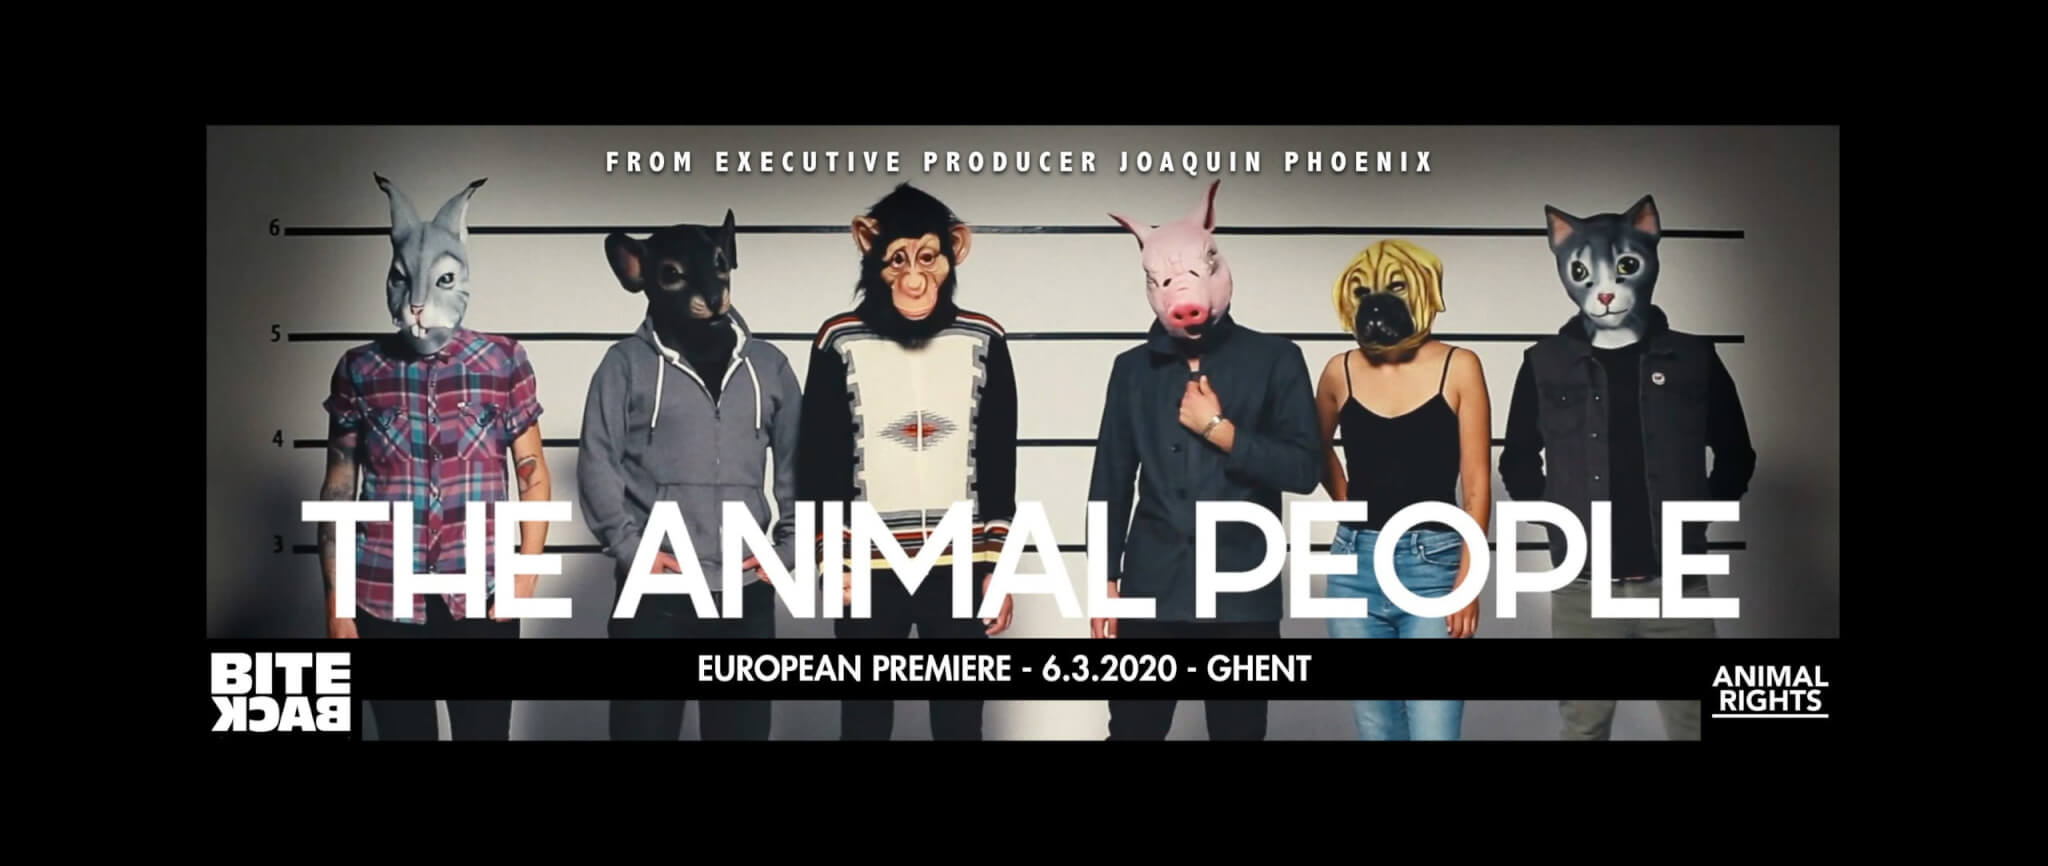 European Premiere The Animal People